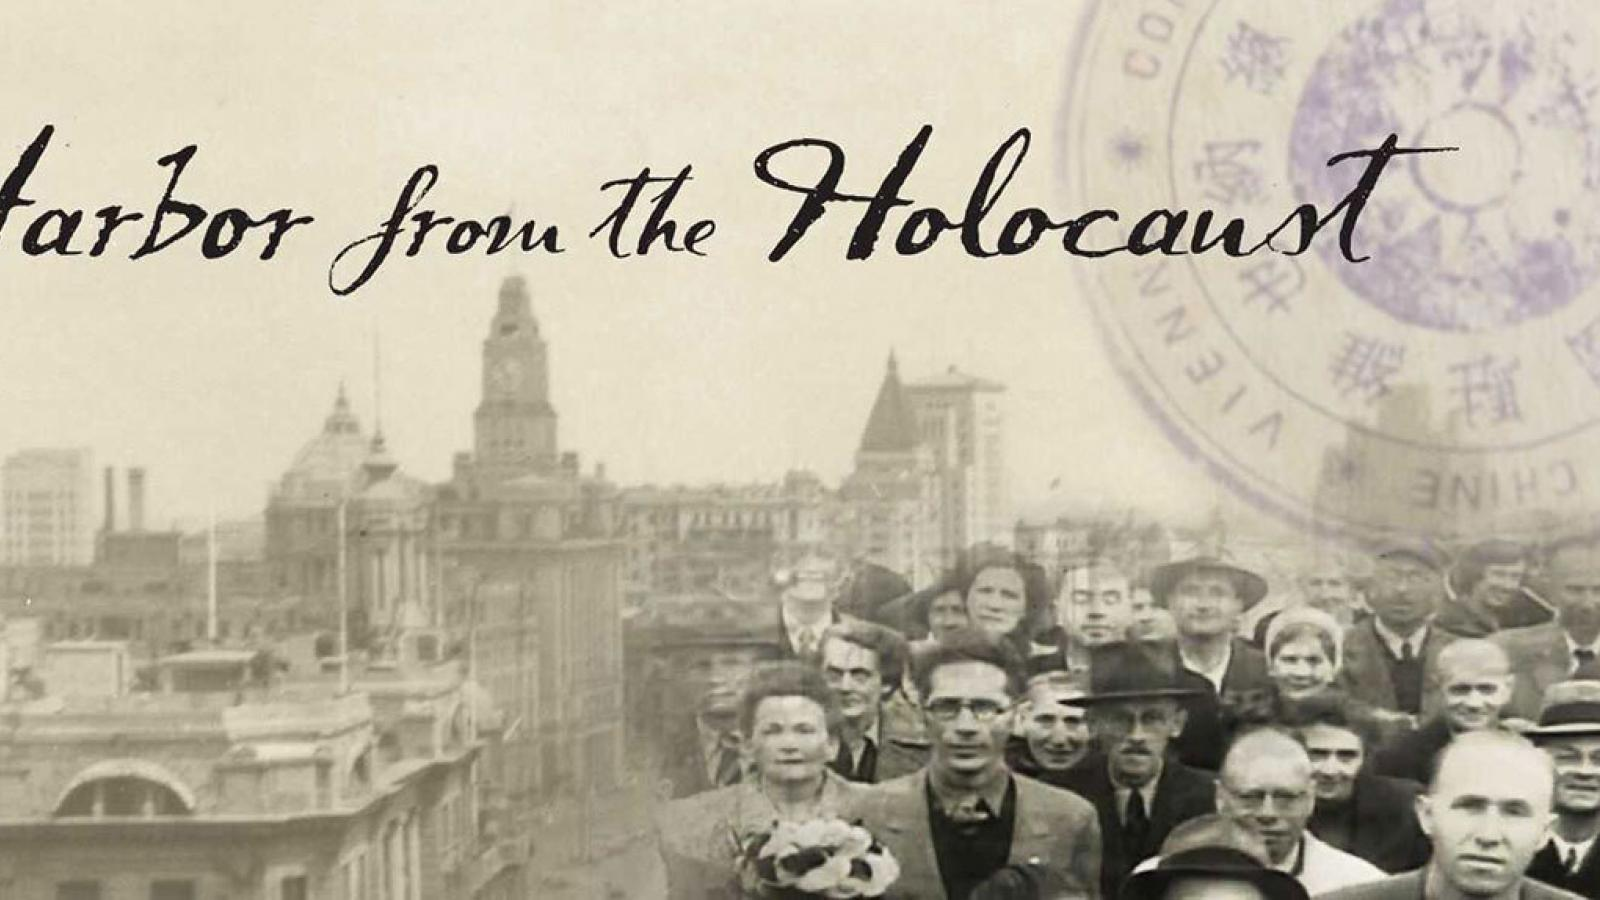 Harbor from the Holocaust